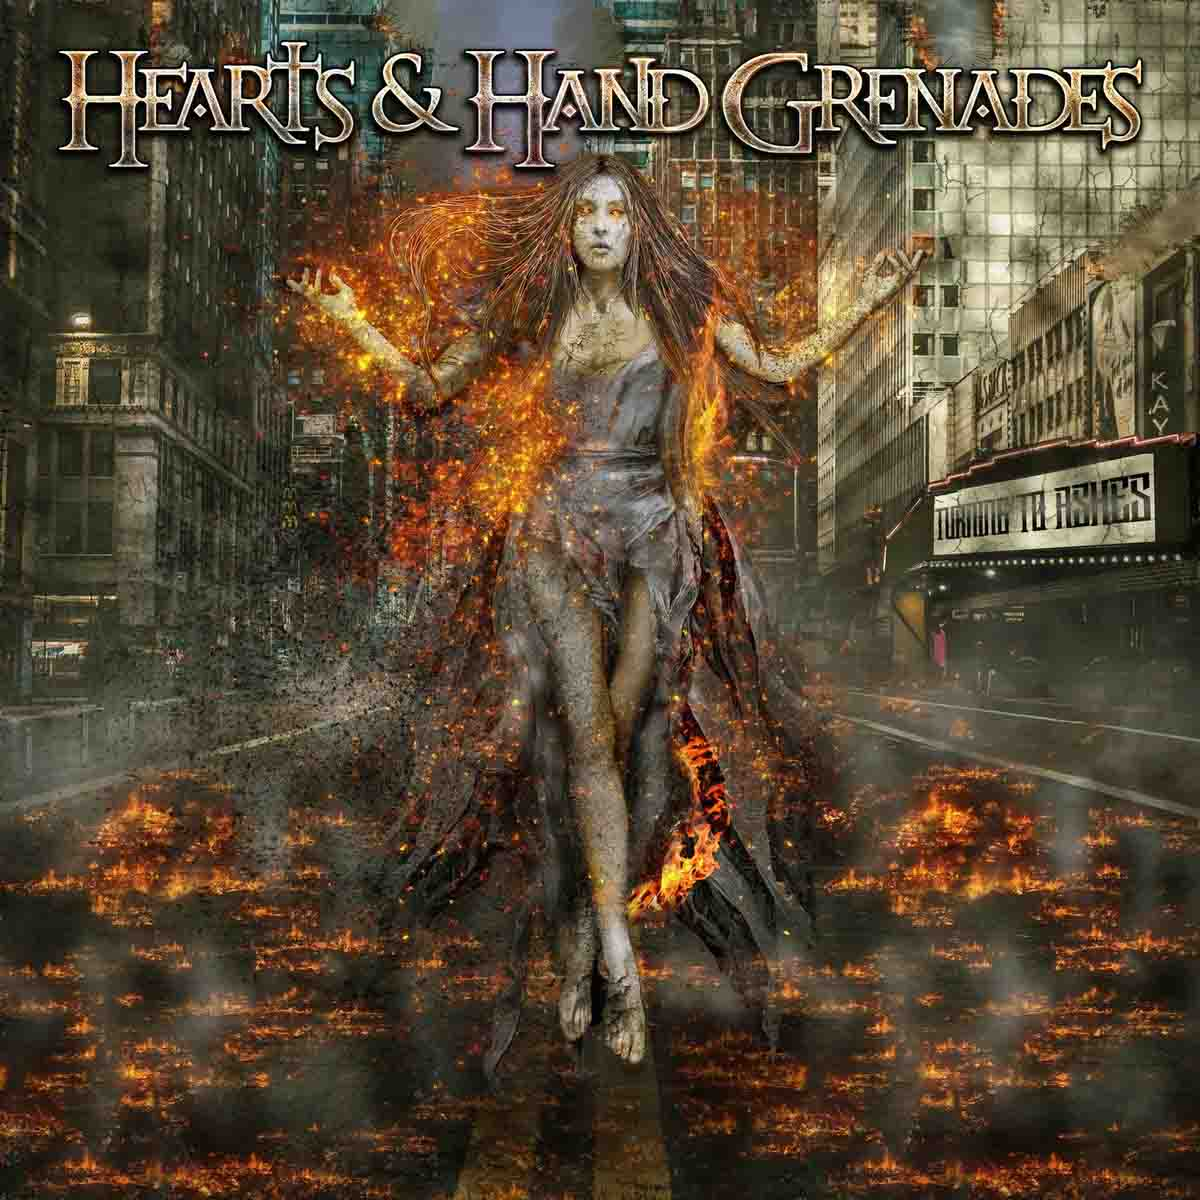 Hearts & Hand Grenades - Turning To Ashes